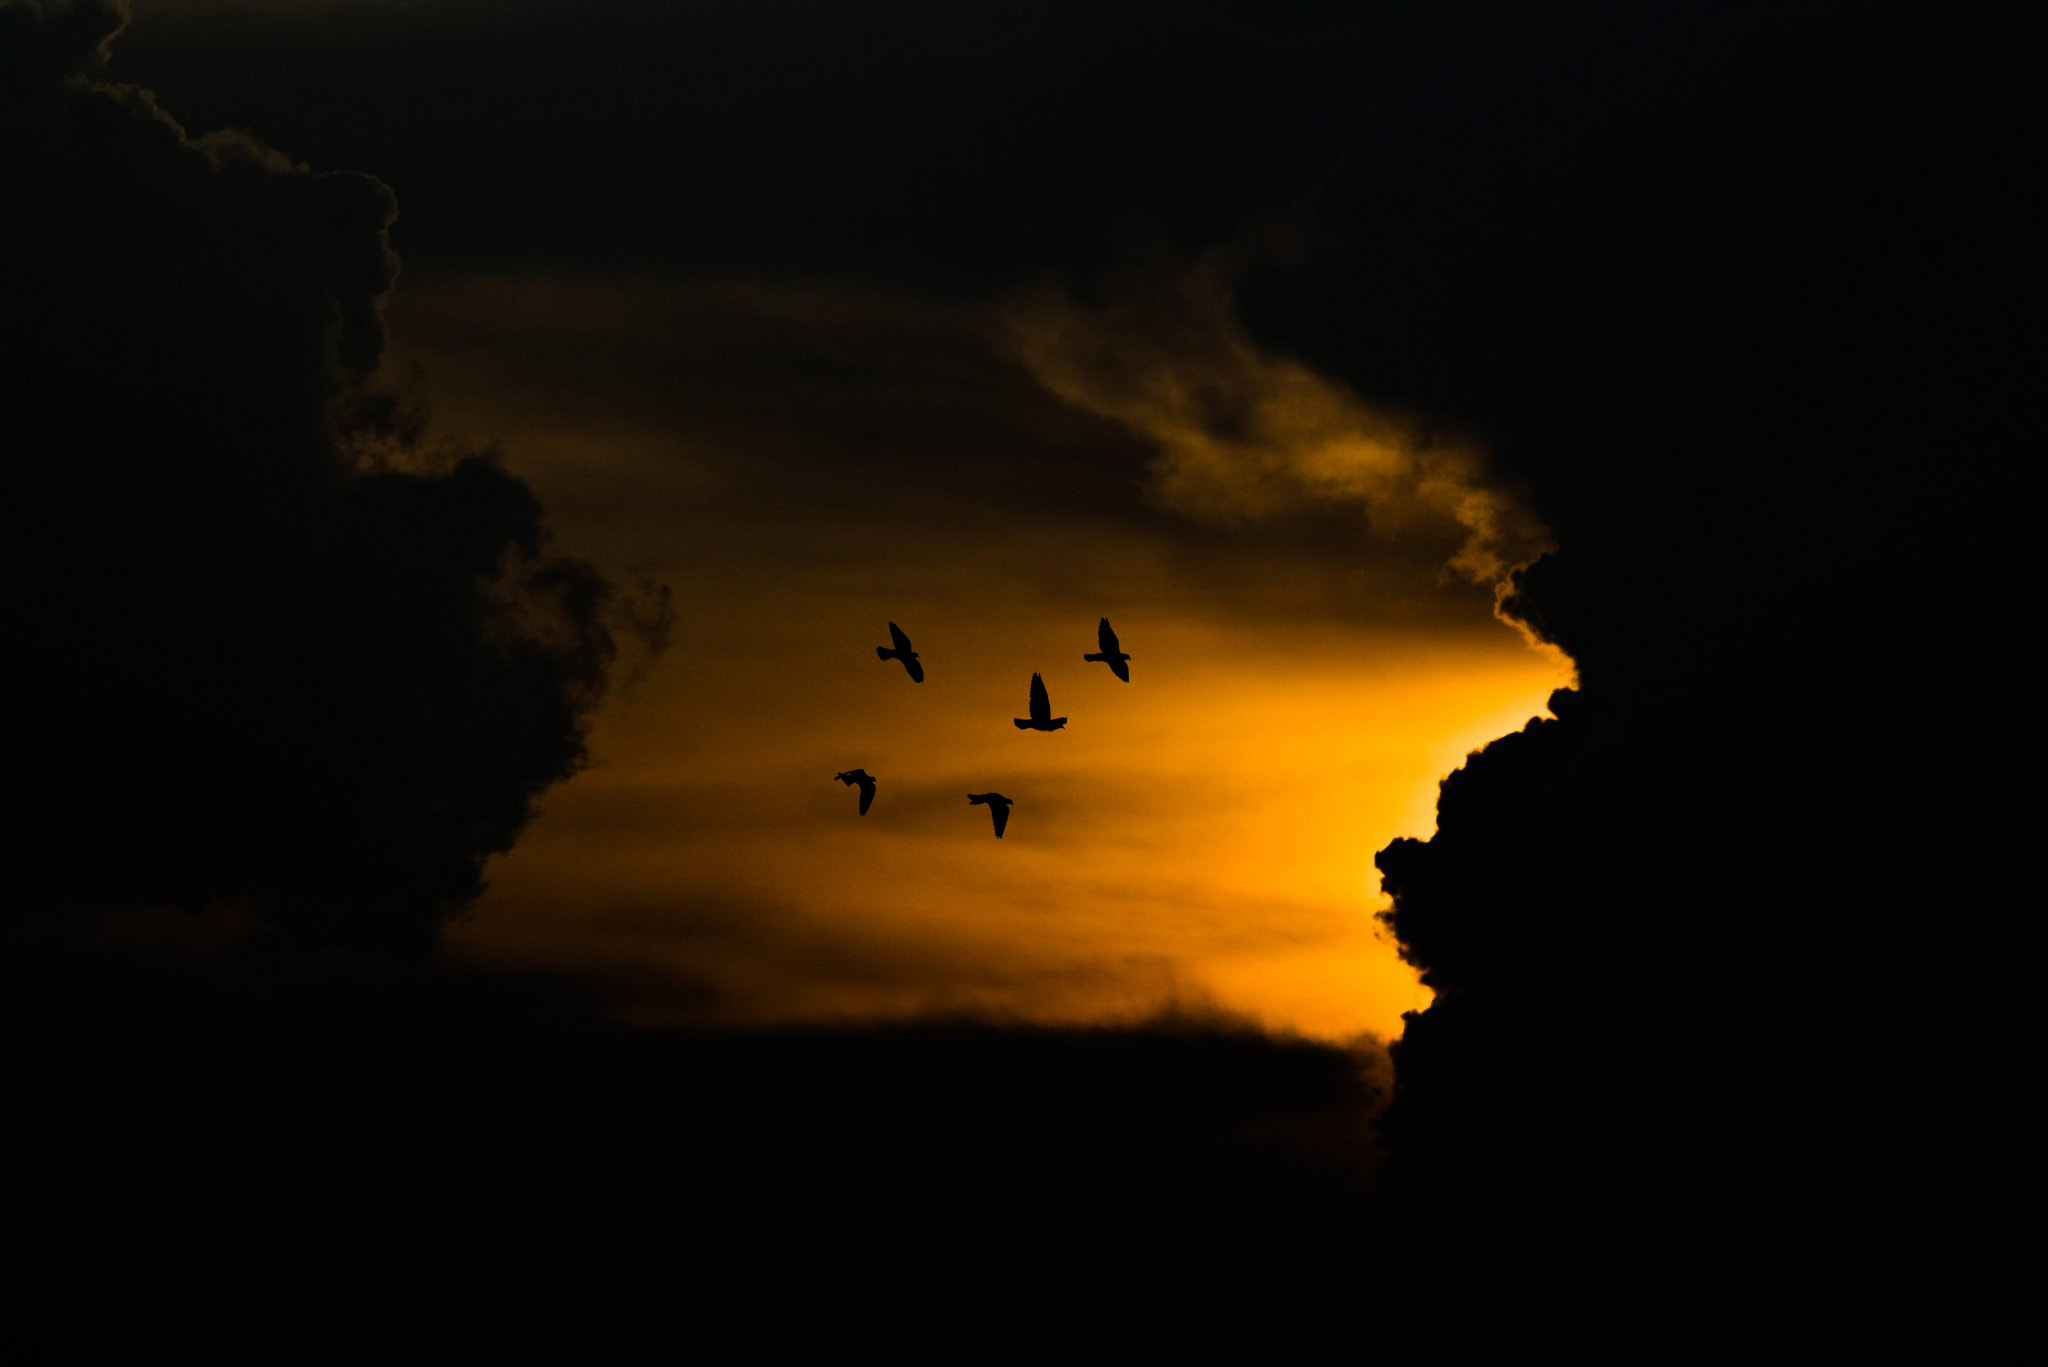 Photograph Flying Away by Siddharth Pandit on 500px